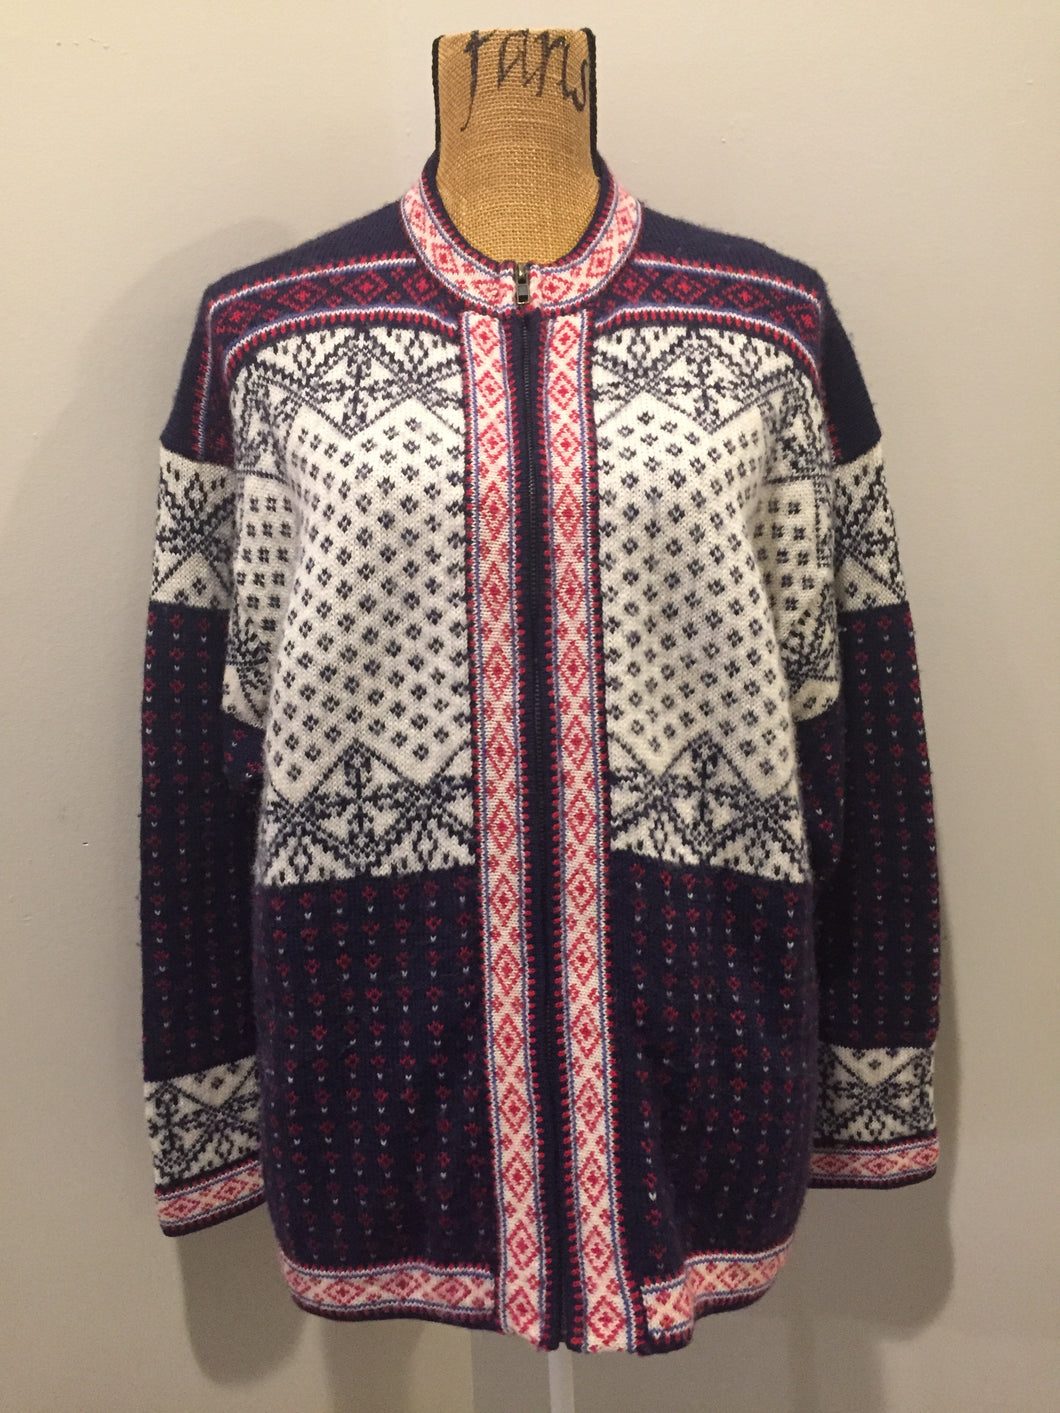 Kingspier Vintage - Norwegian design cardigan in navy blue, red and white, with zipper. Size large.